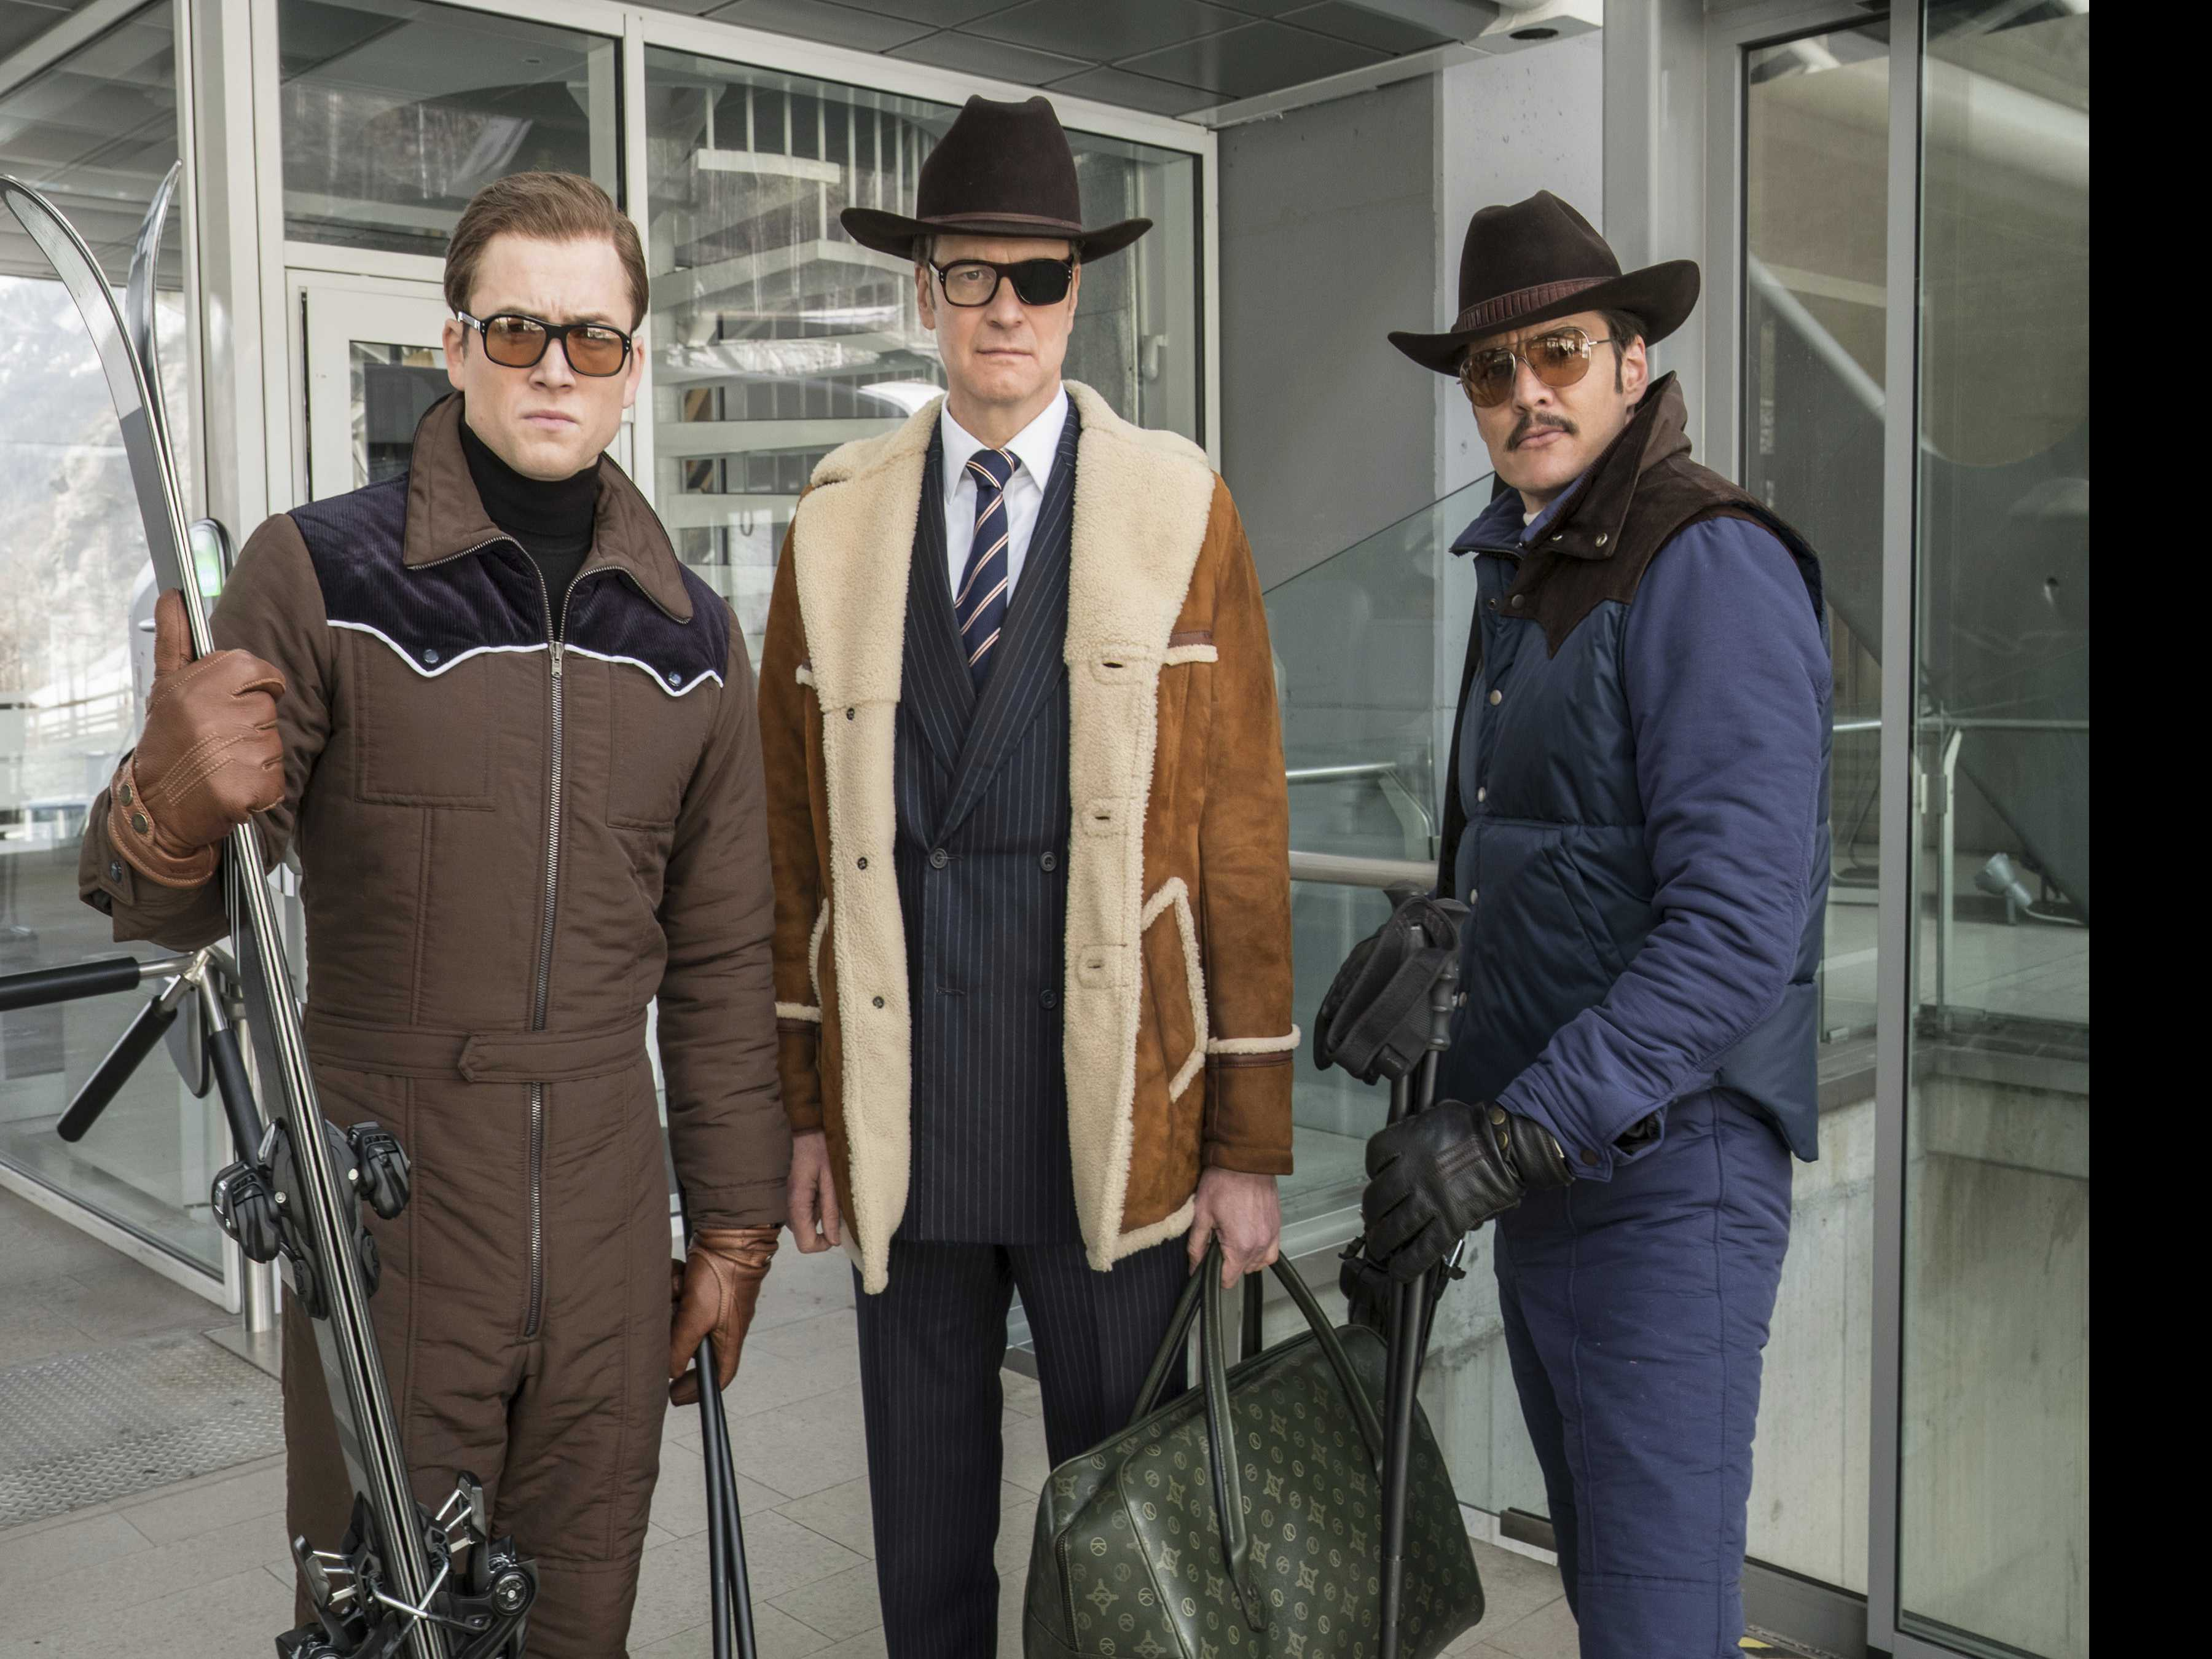 'Kingsman: The Golden Circle' Dethrones 'It' with $39M Debut